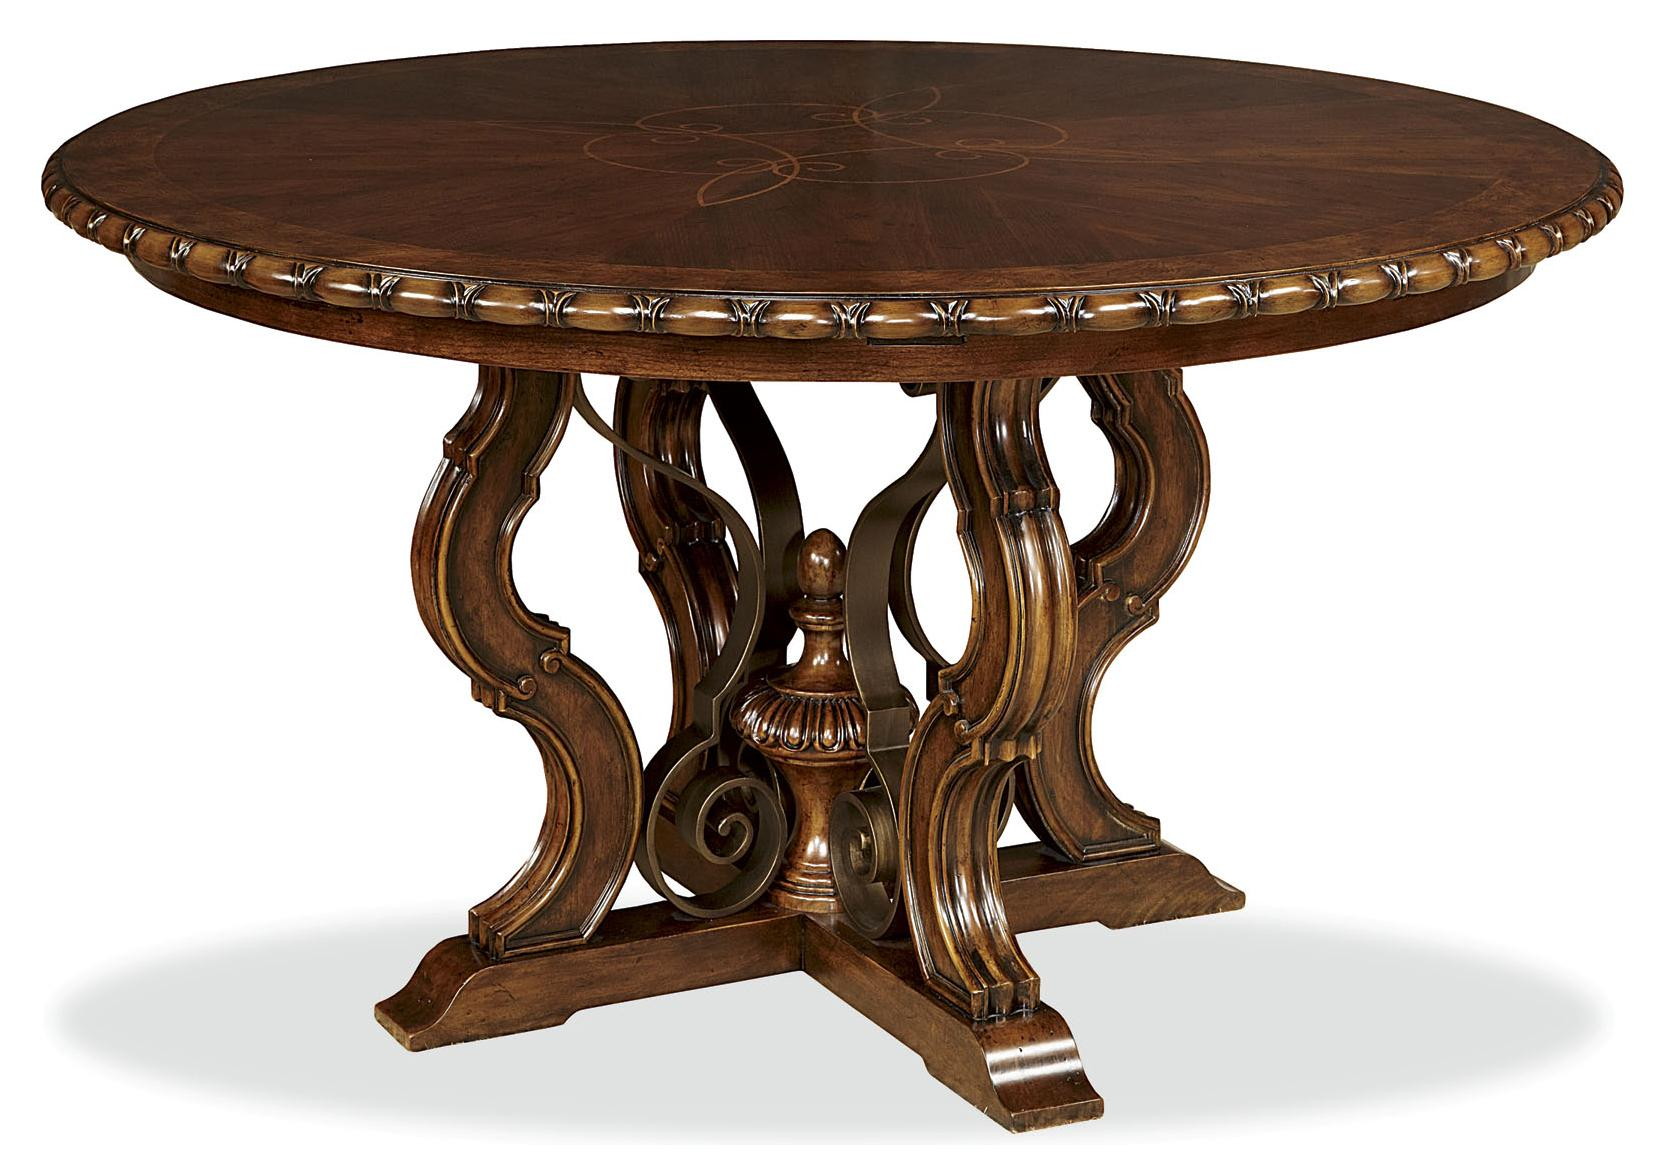 Excellent pedestal dining table With-Leaf for dining room with round pedestal dining table